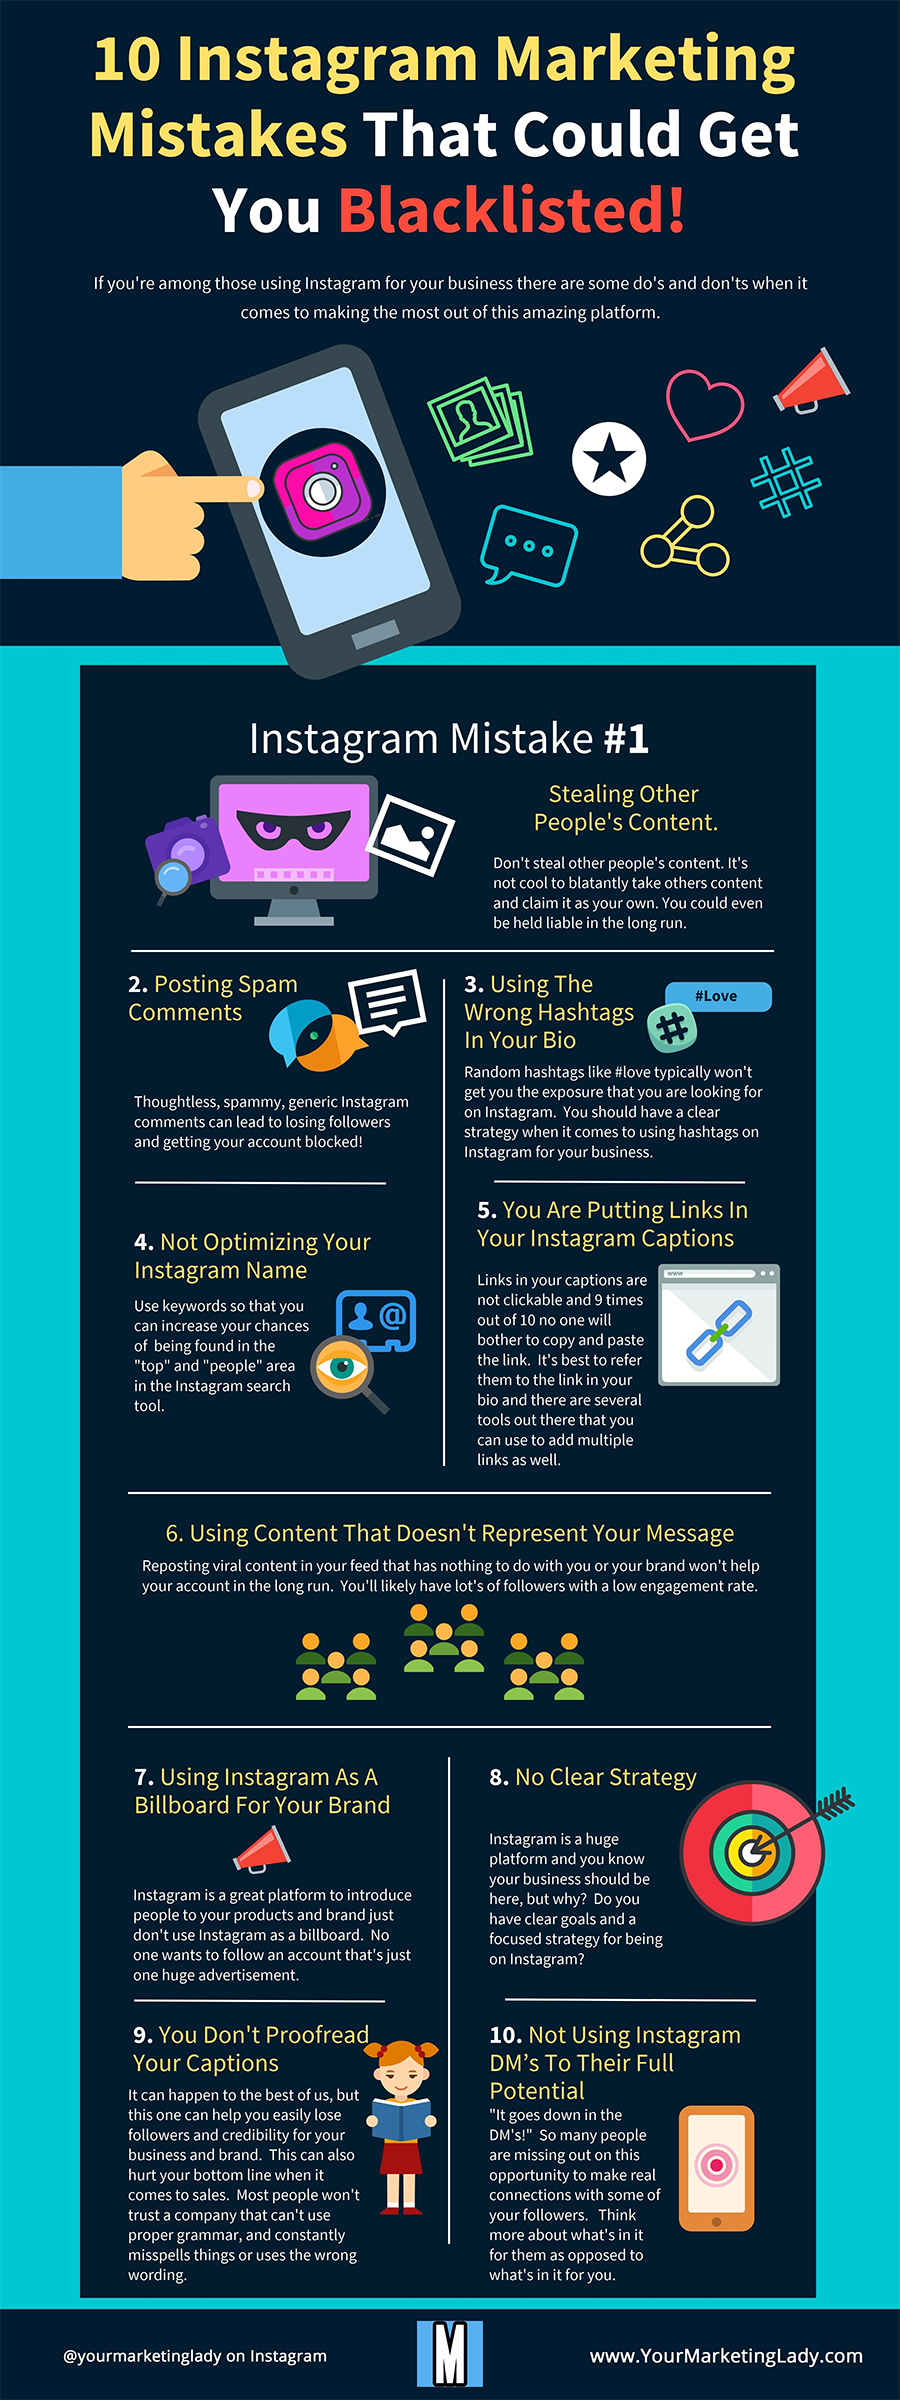 Infographic lists key Instagram marketing mistakes to avoid